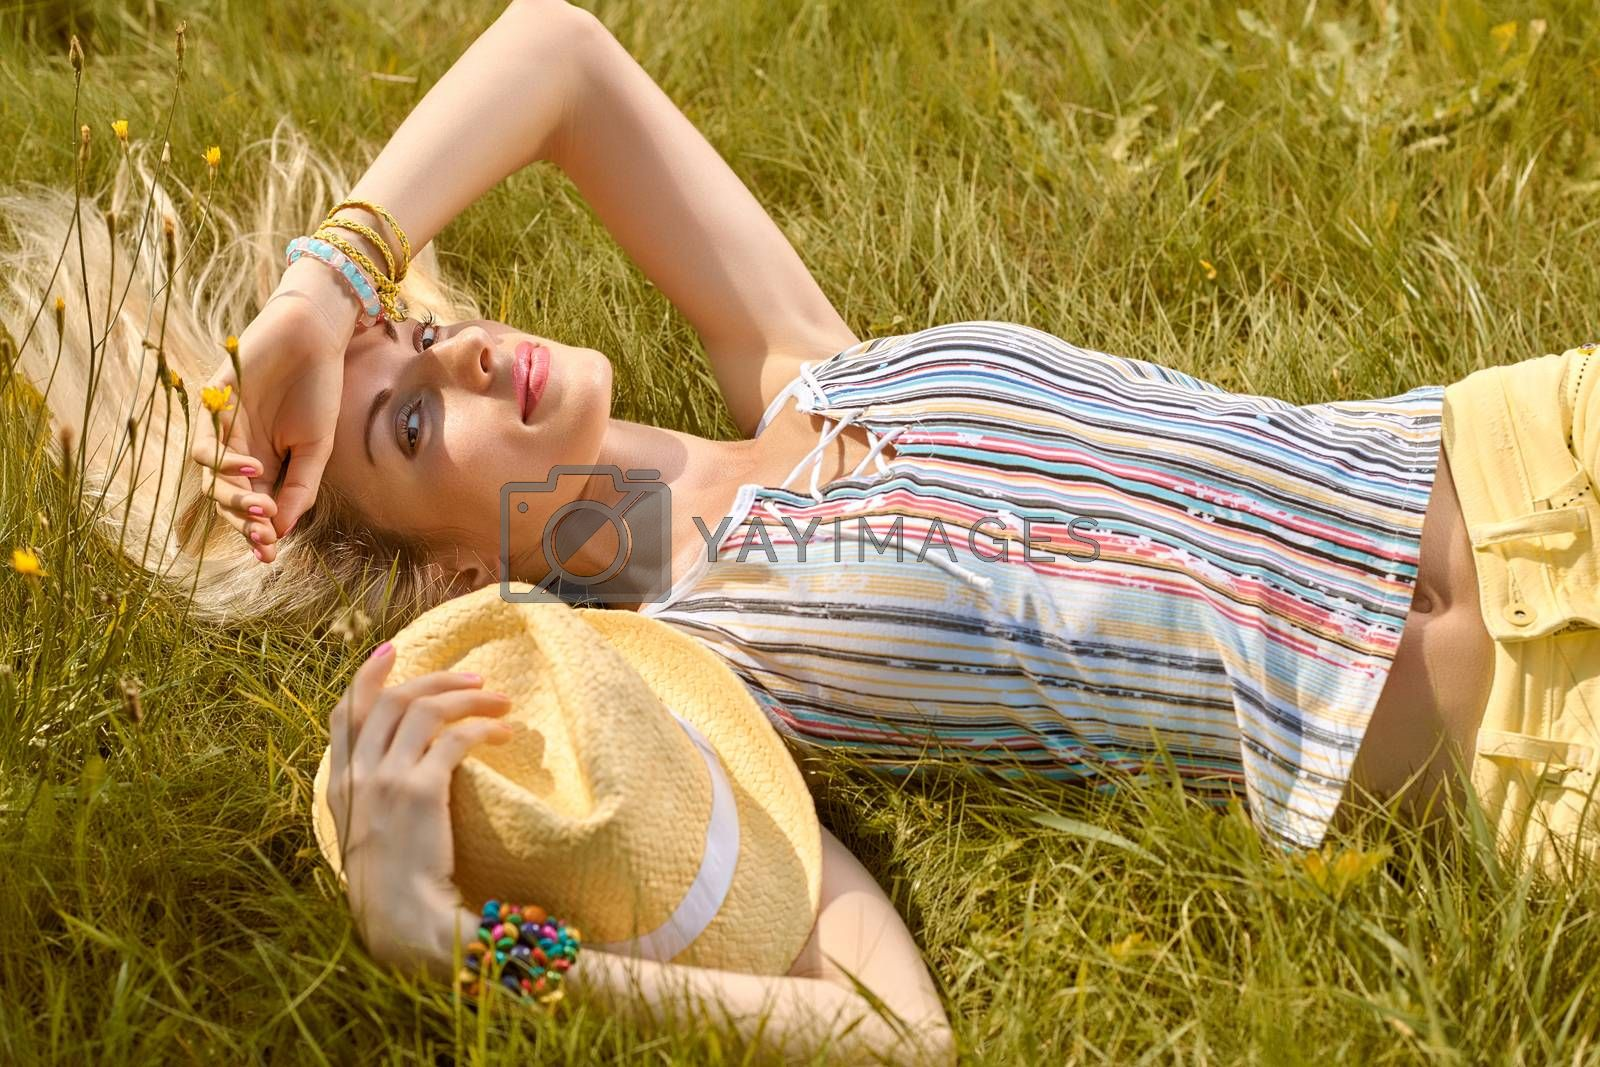 Beauty playful woman relax in summer garden smiling on grass, people, outdoors. Attractive happy blonde girl enjoying nature, harmony on meadow, with hat, lifestyle. Sunny, forest, flowers, copyspace